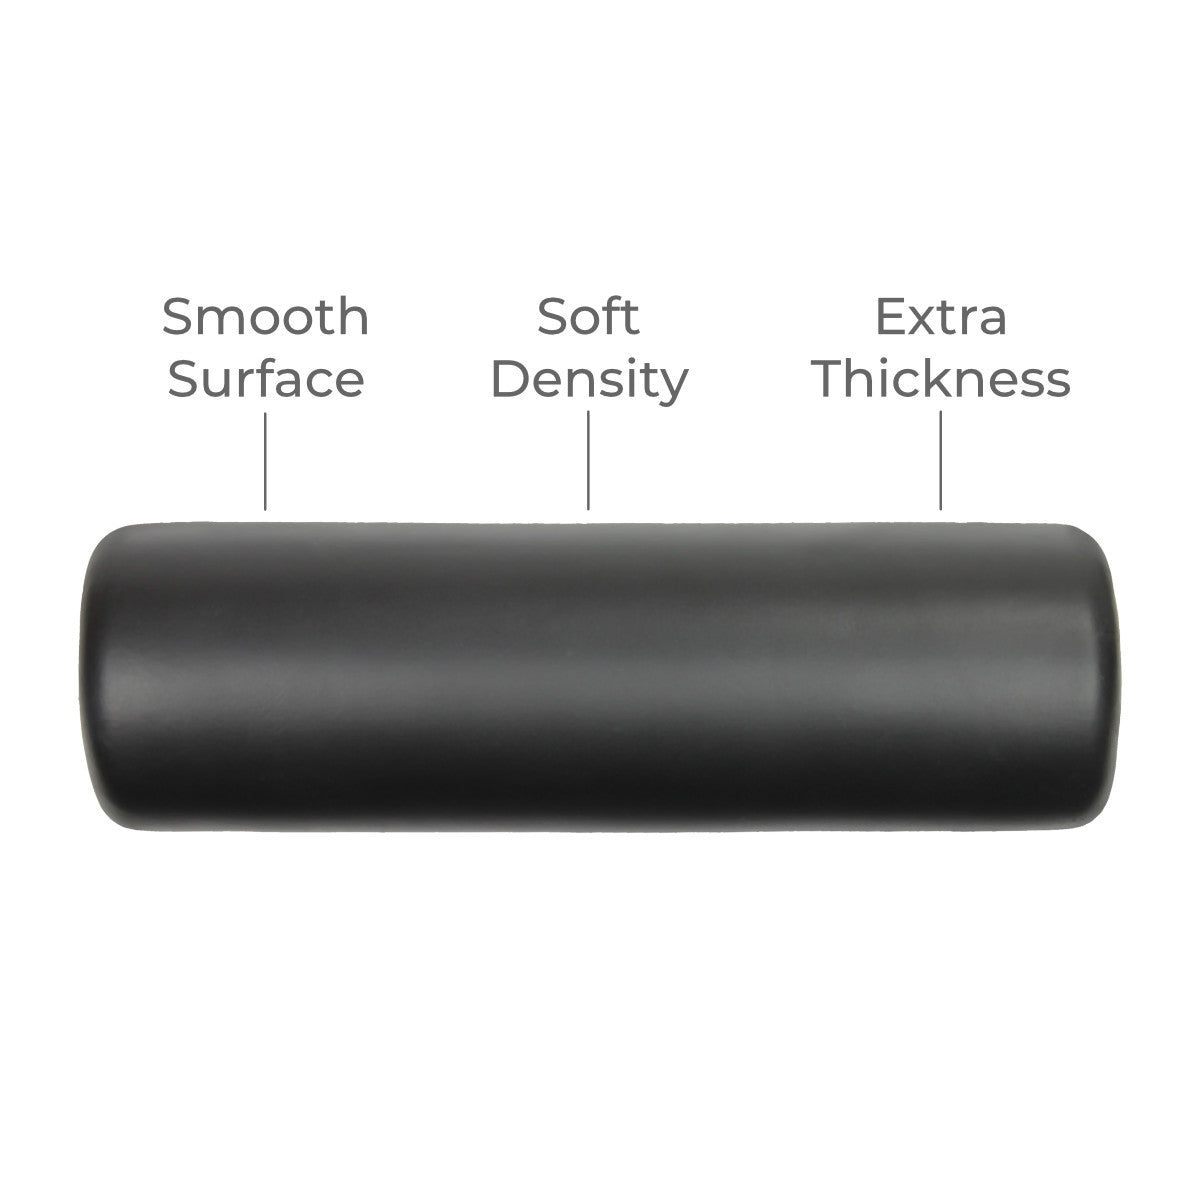 WarmUP smooth soft-density foam roller for use with DoubleUP frame